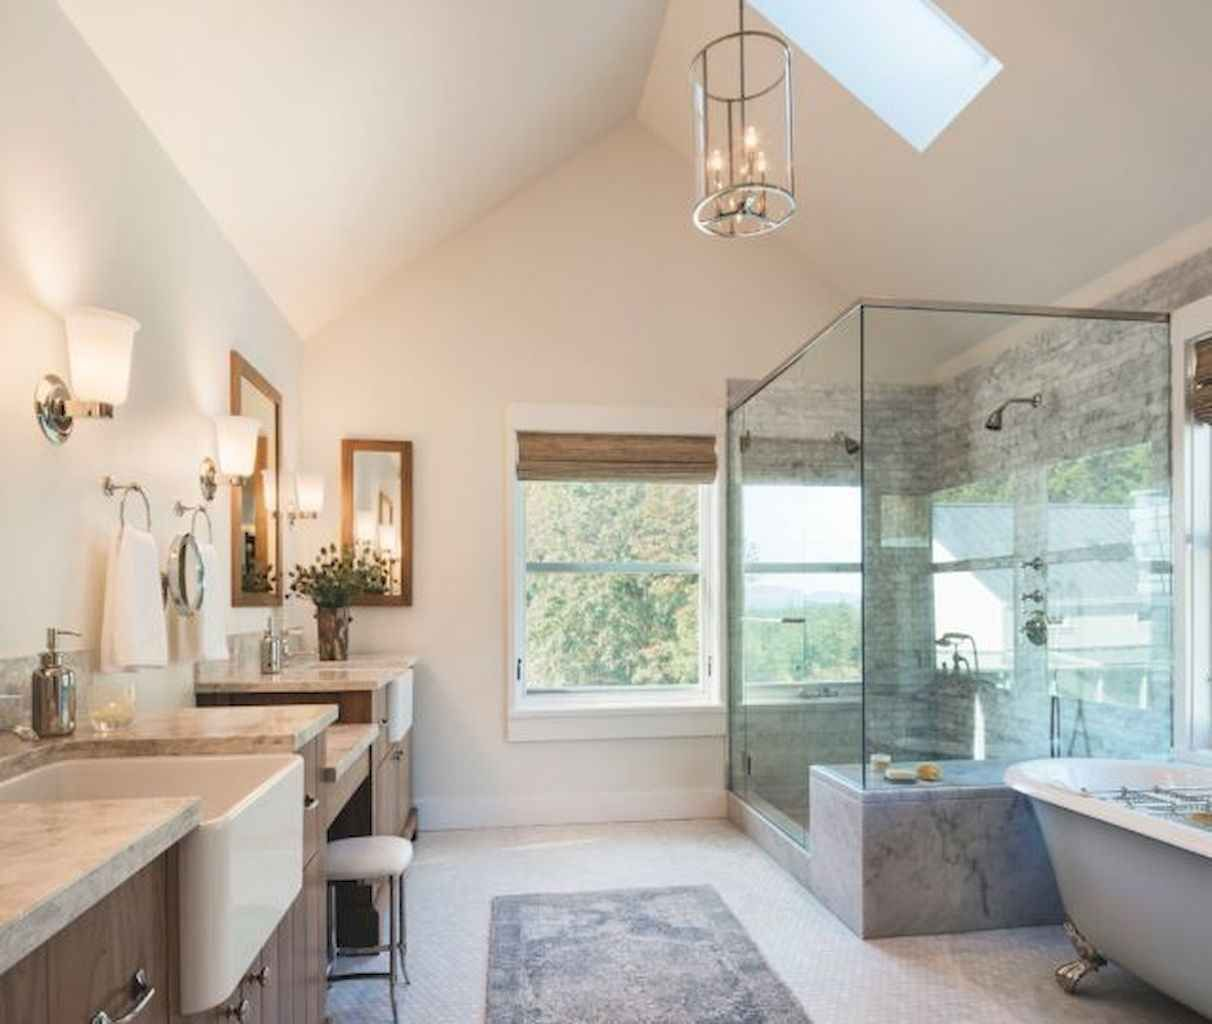 14 beautiful farmhouse master bathroom remodel ideas in on beautiful farmhouse bathroom shower decor ideas and remodel an extraordinary design id=70785